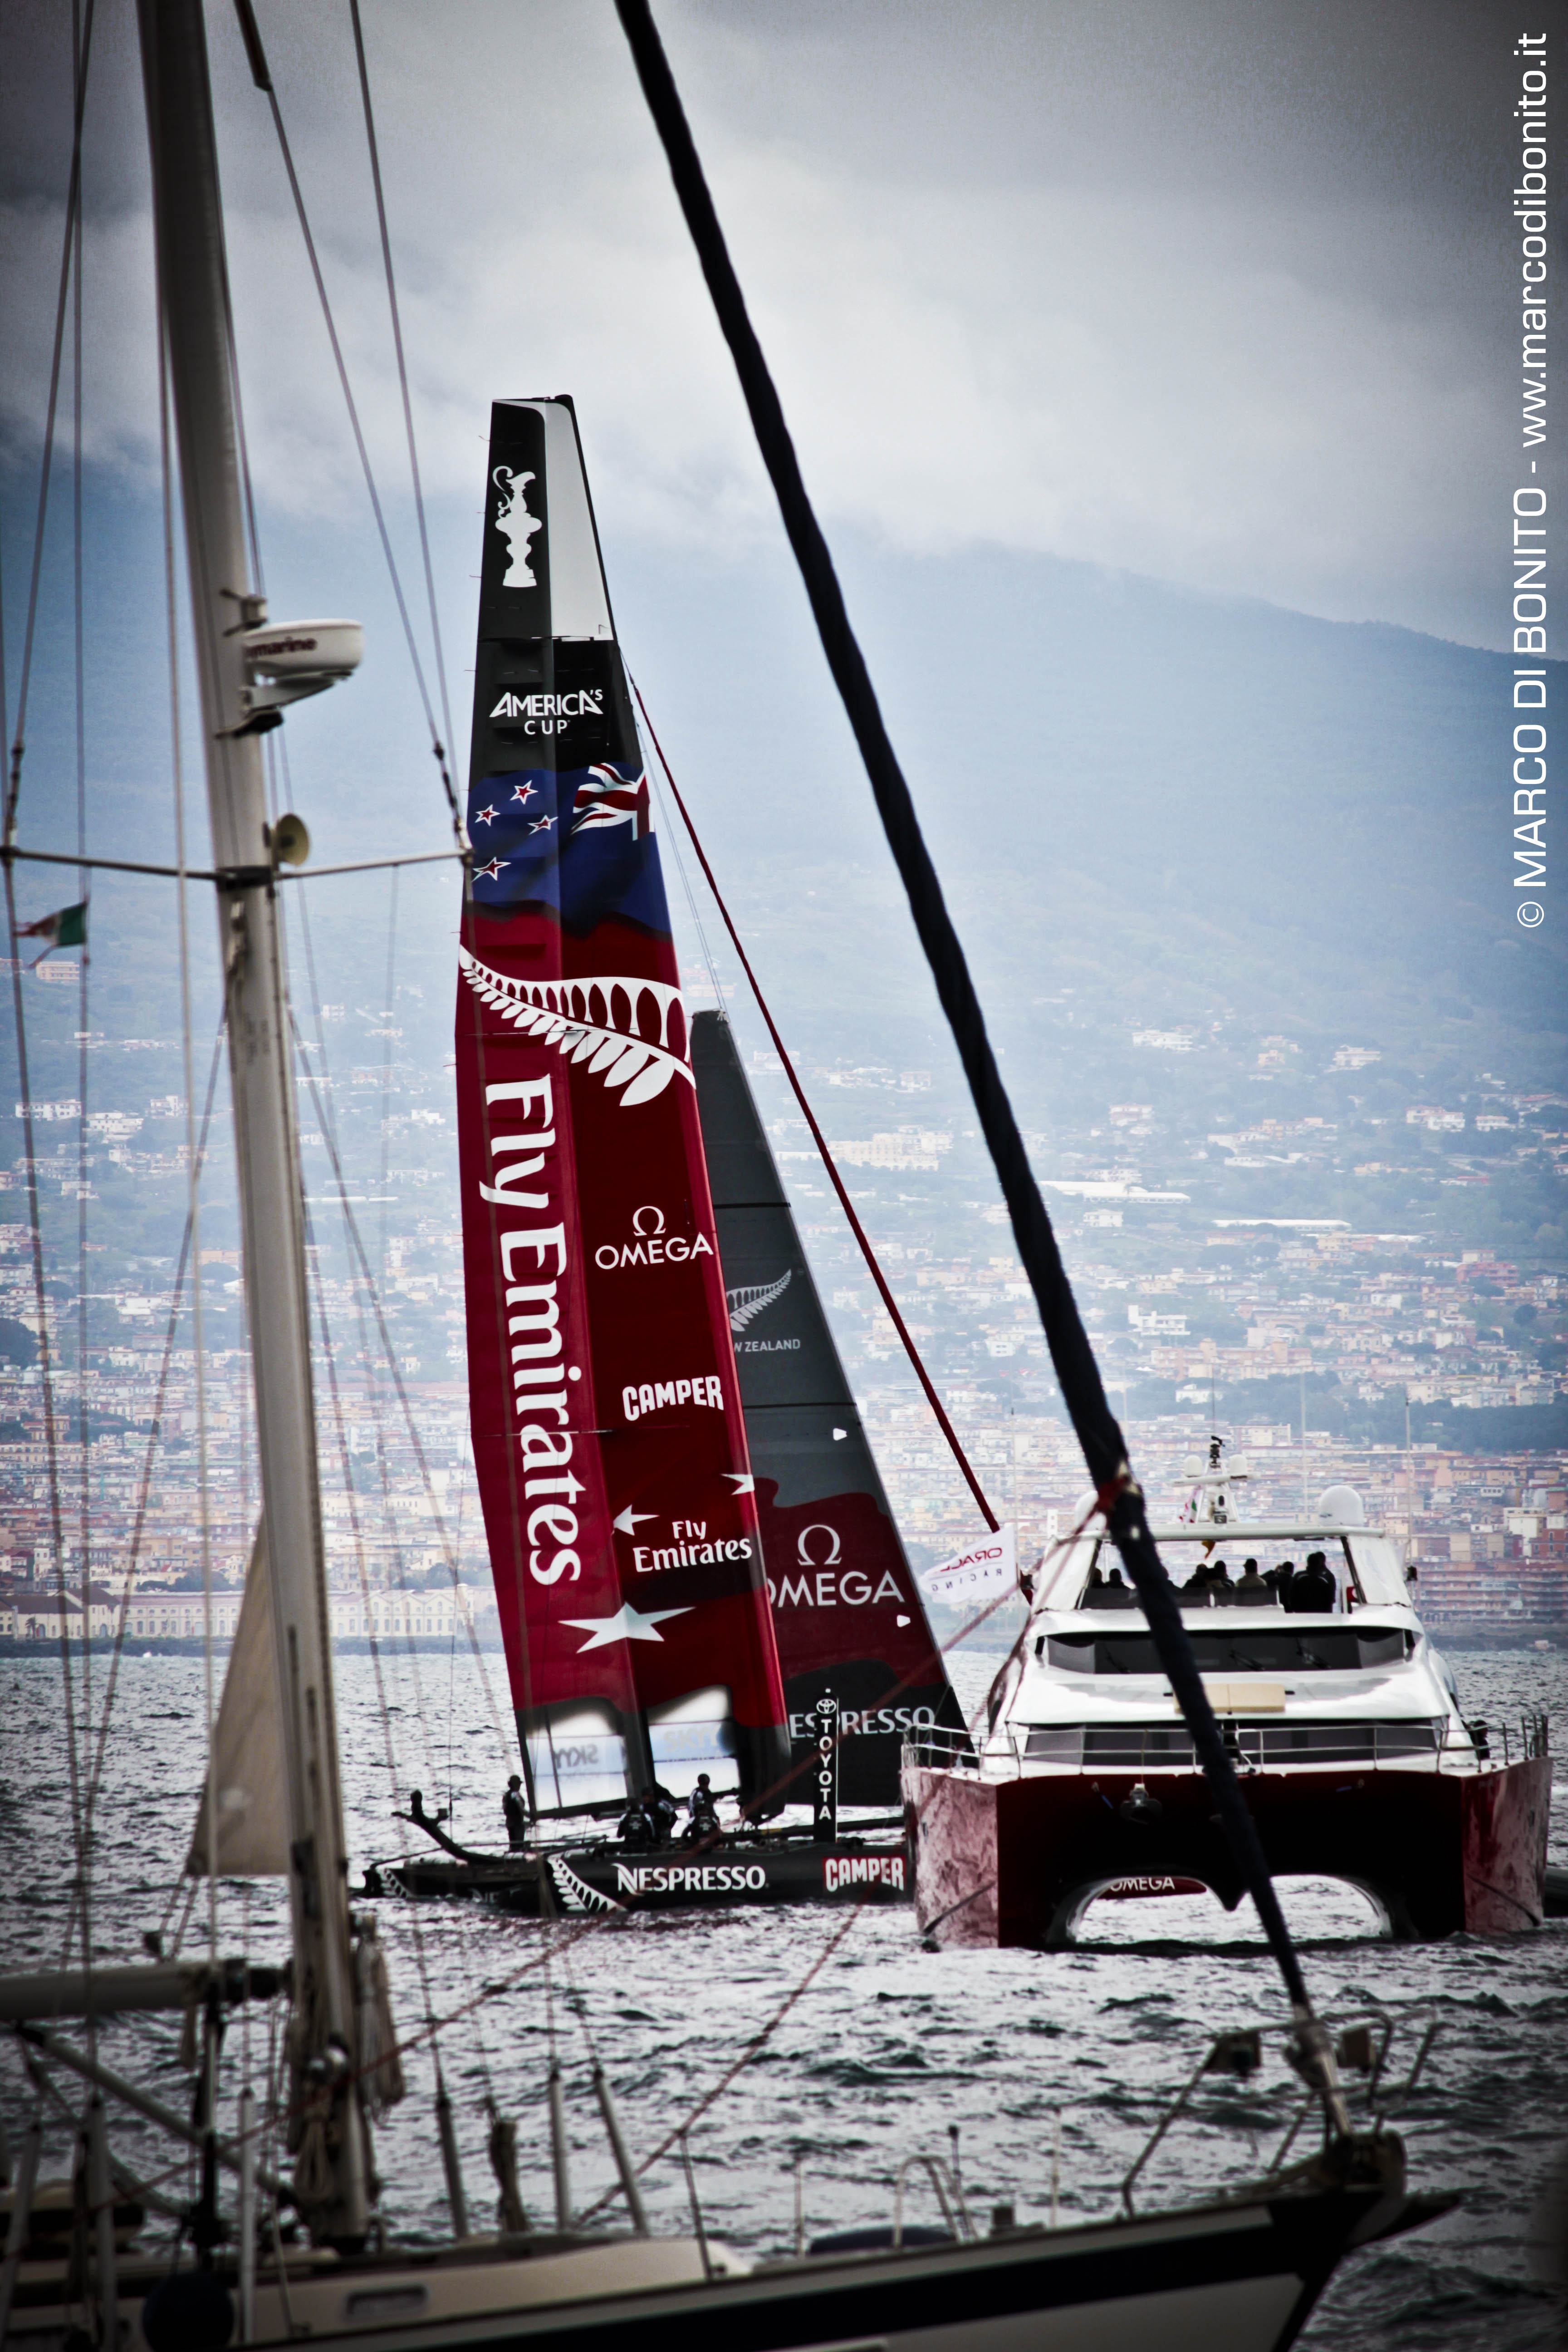 America's Cup 02